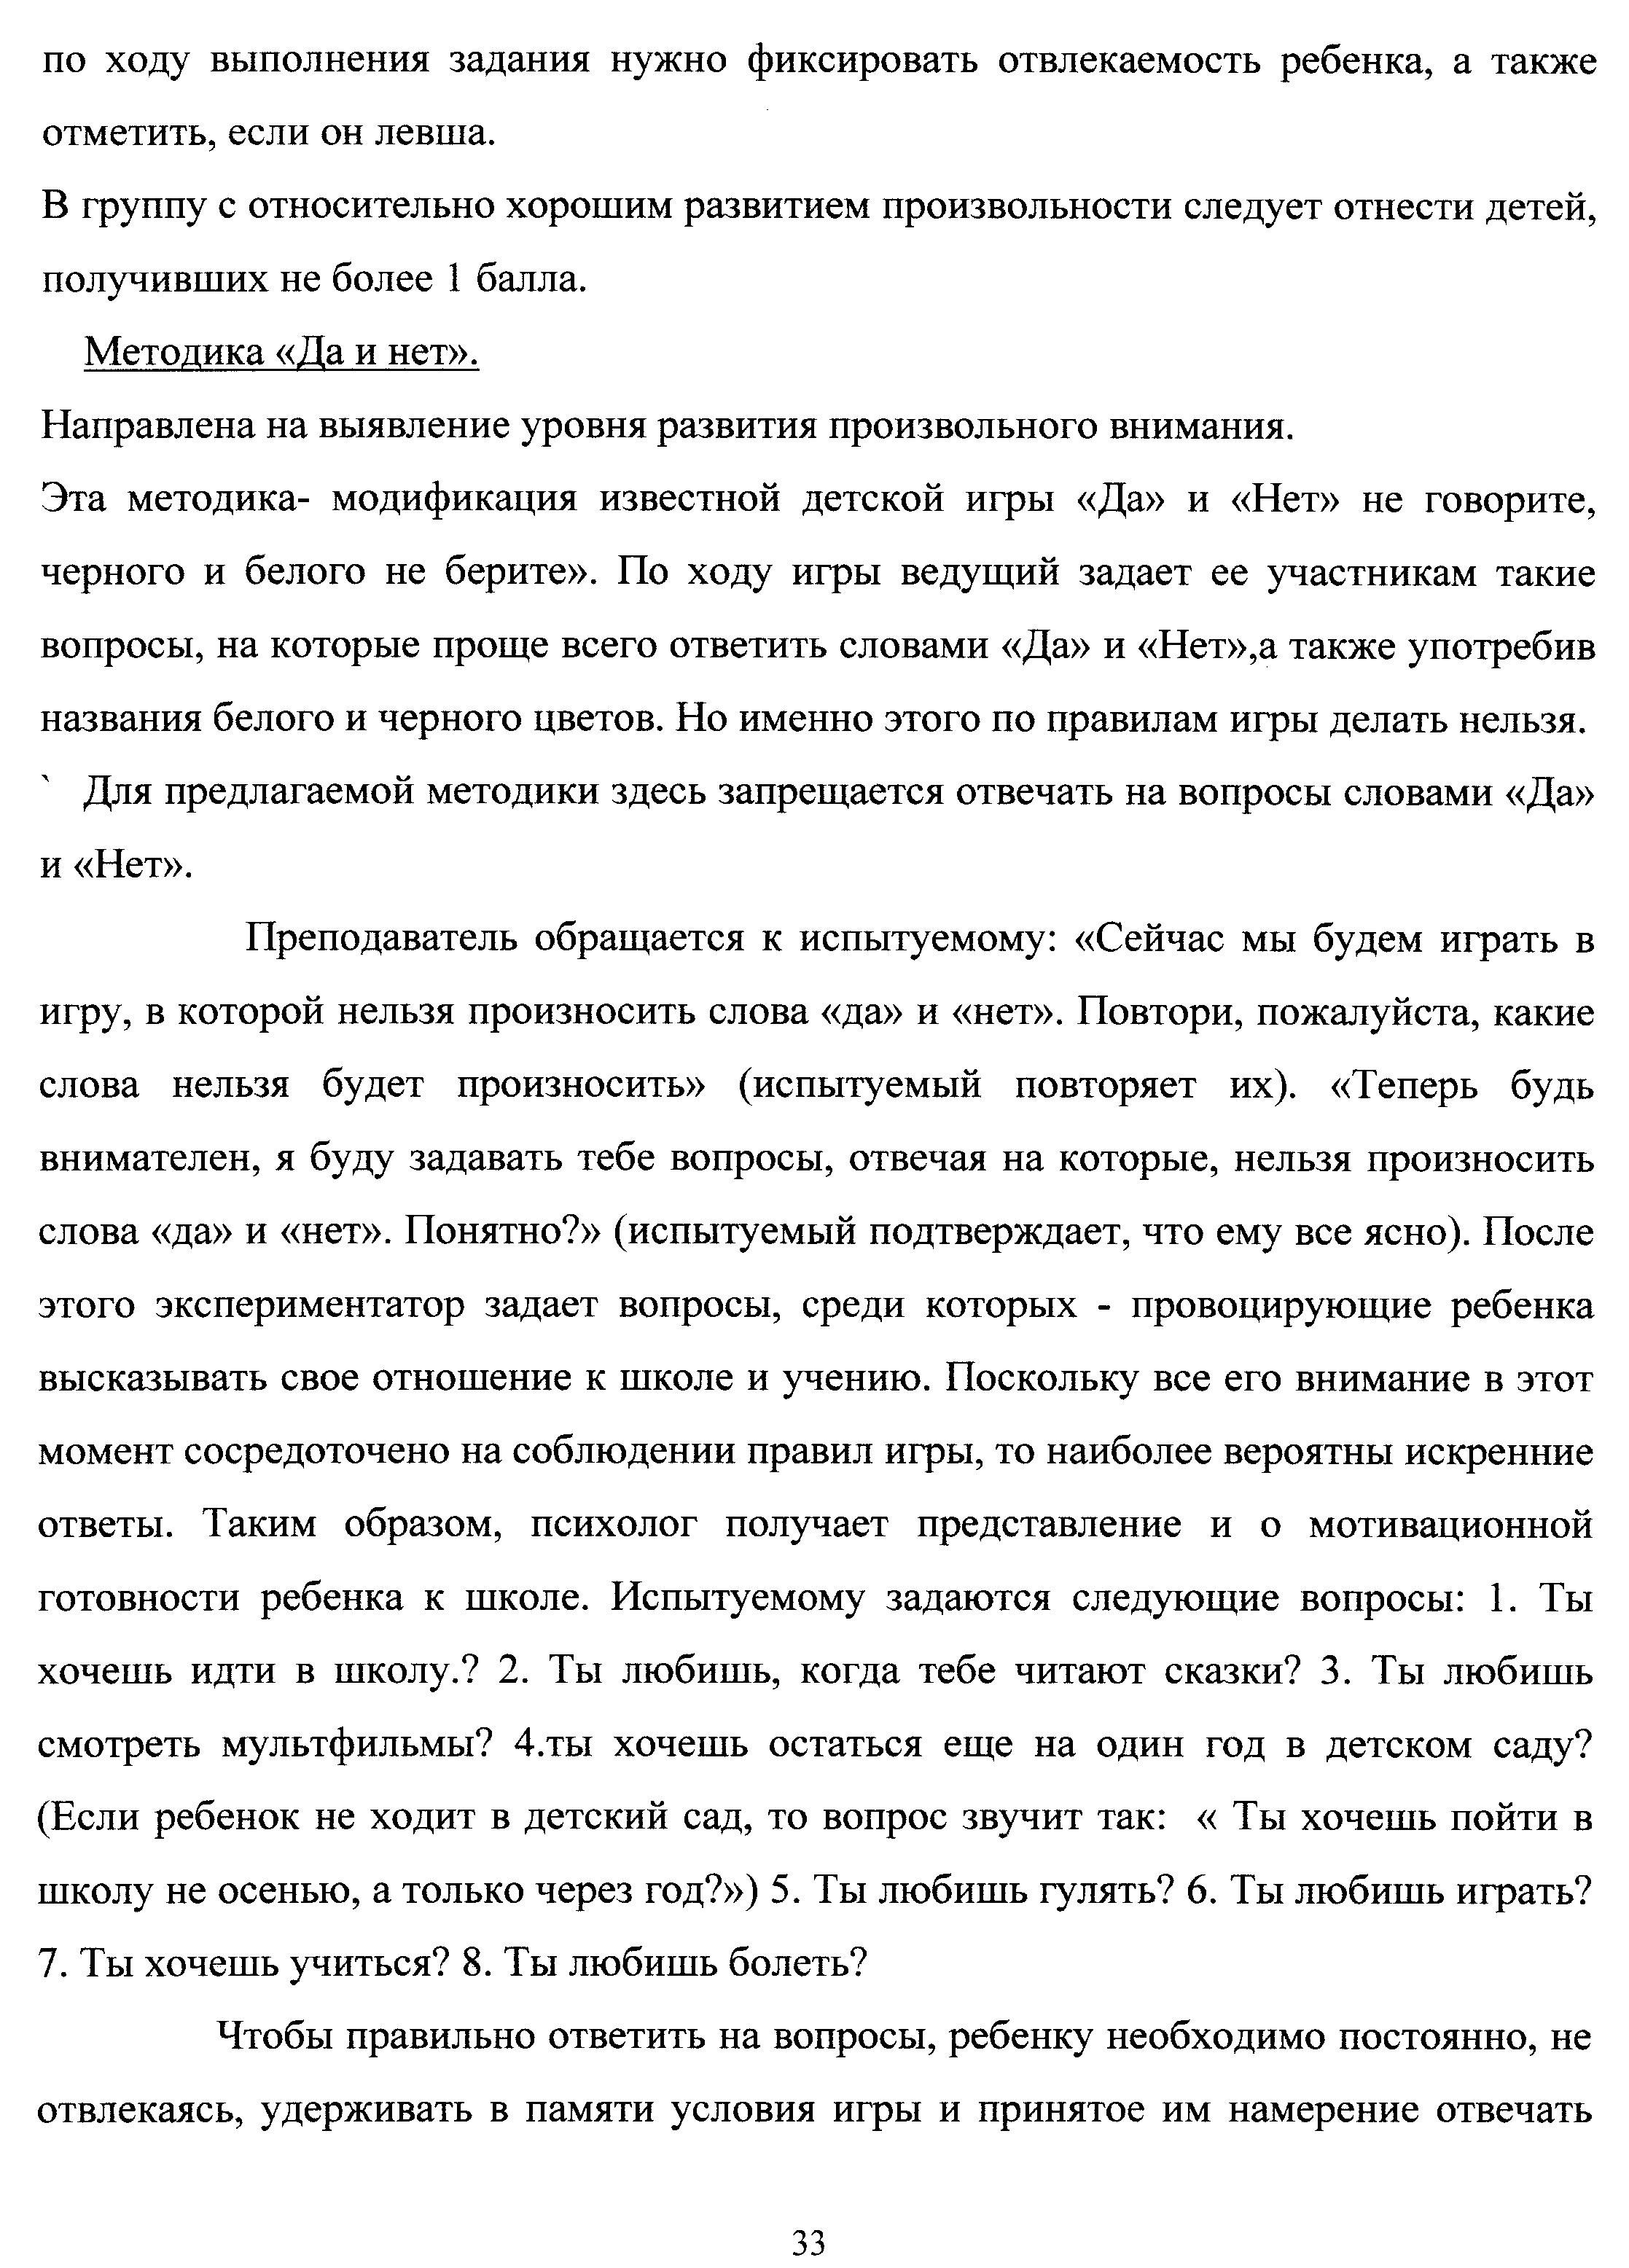 C:\Users\ЛАРИСА\Documents\Scanned Documents\Рисунок (137).jpg